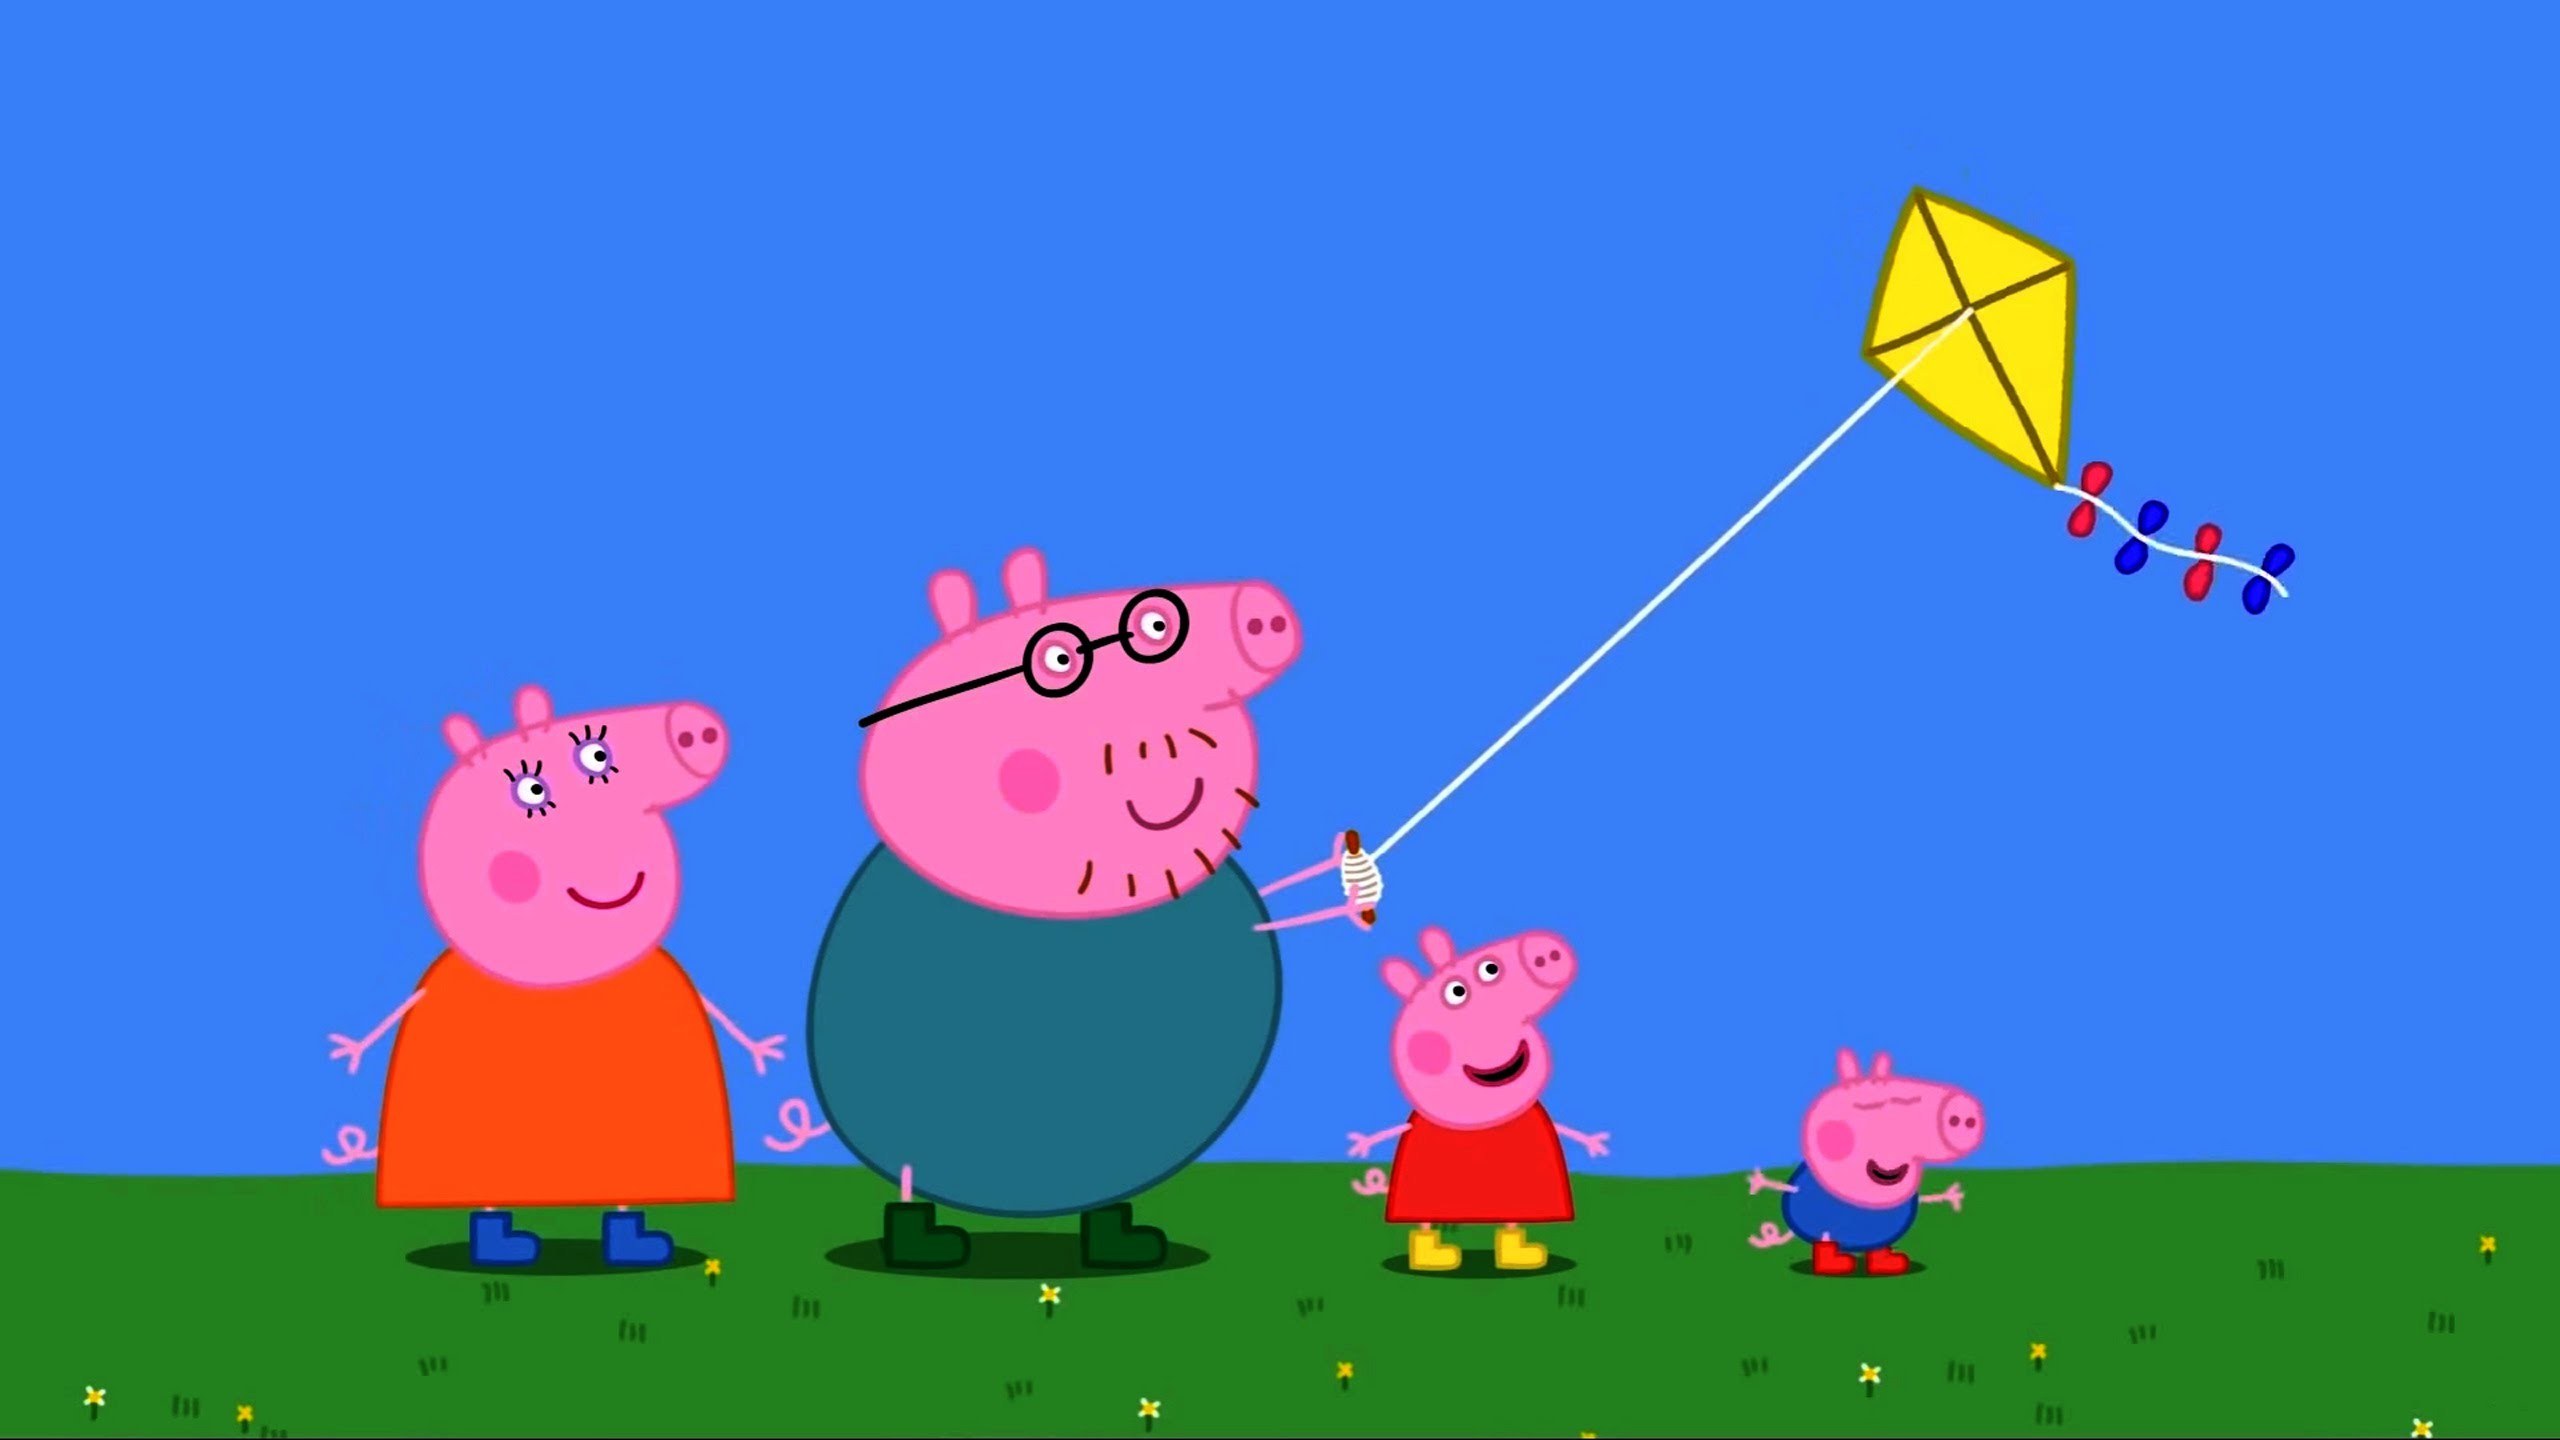 Peppa Pig Coloring Pages for Kids – Peppa Pig Coloring Games – Peppa kite  Coloring Book